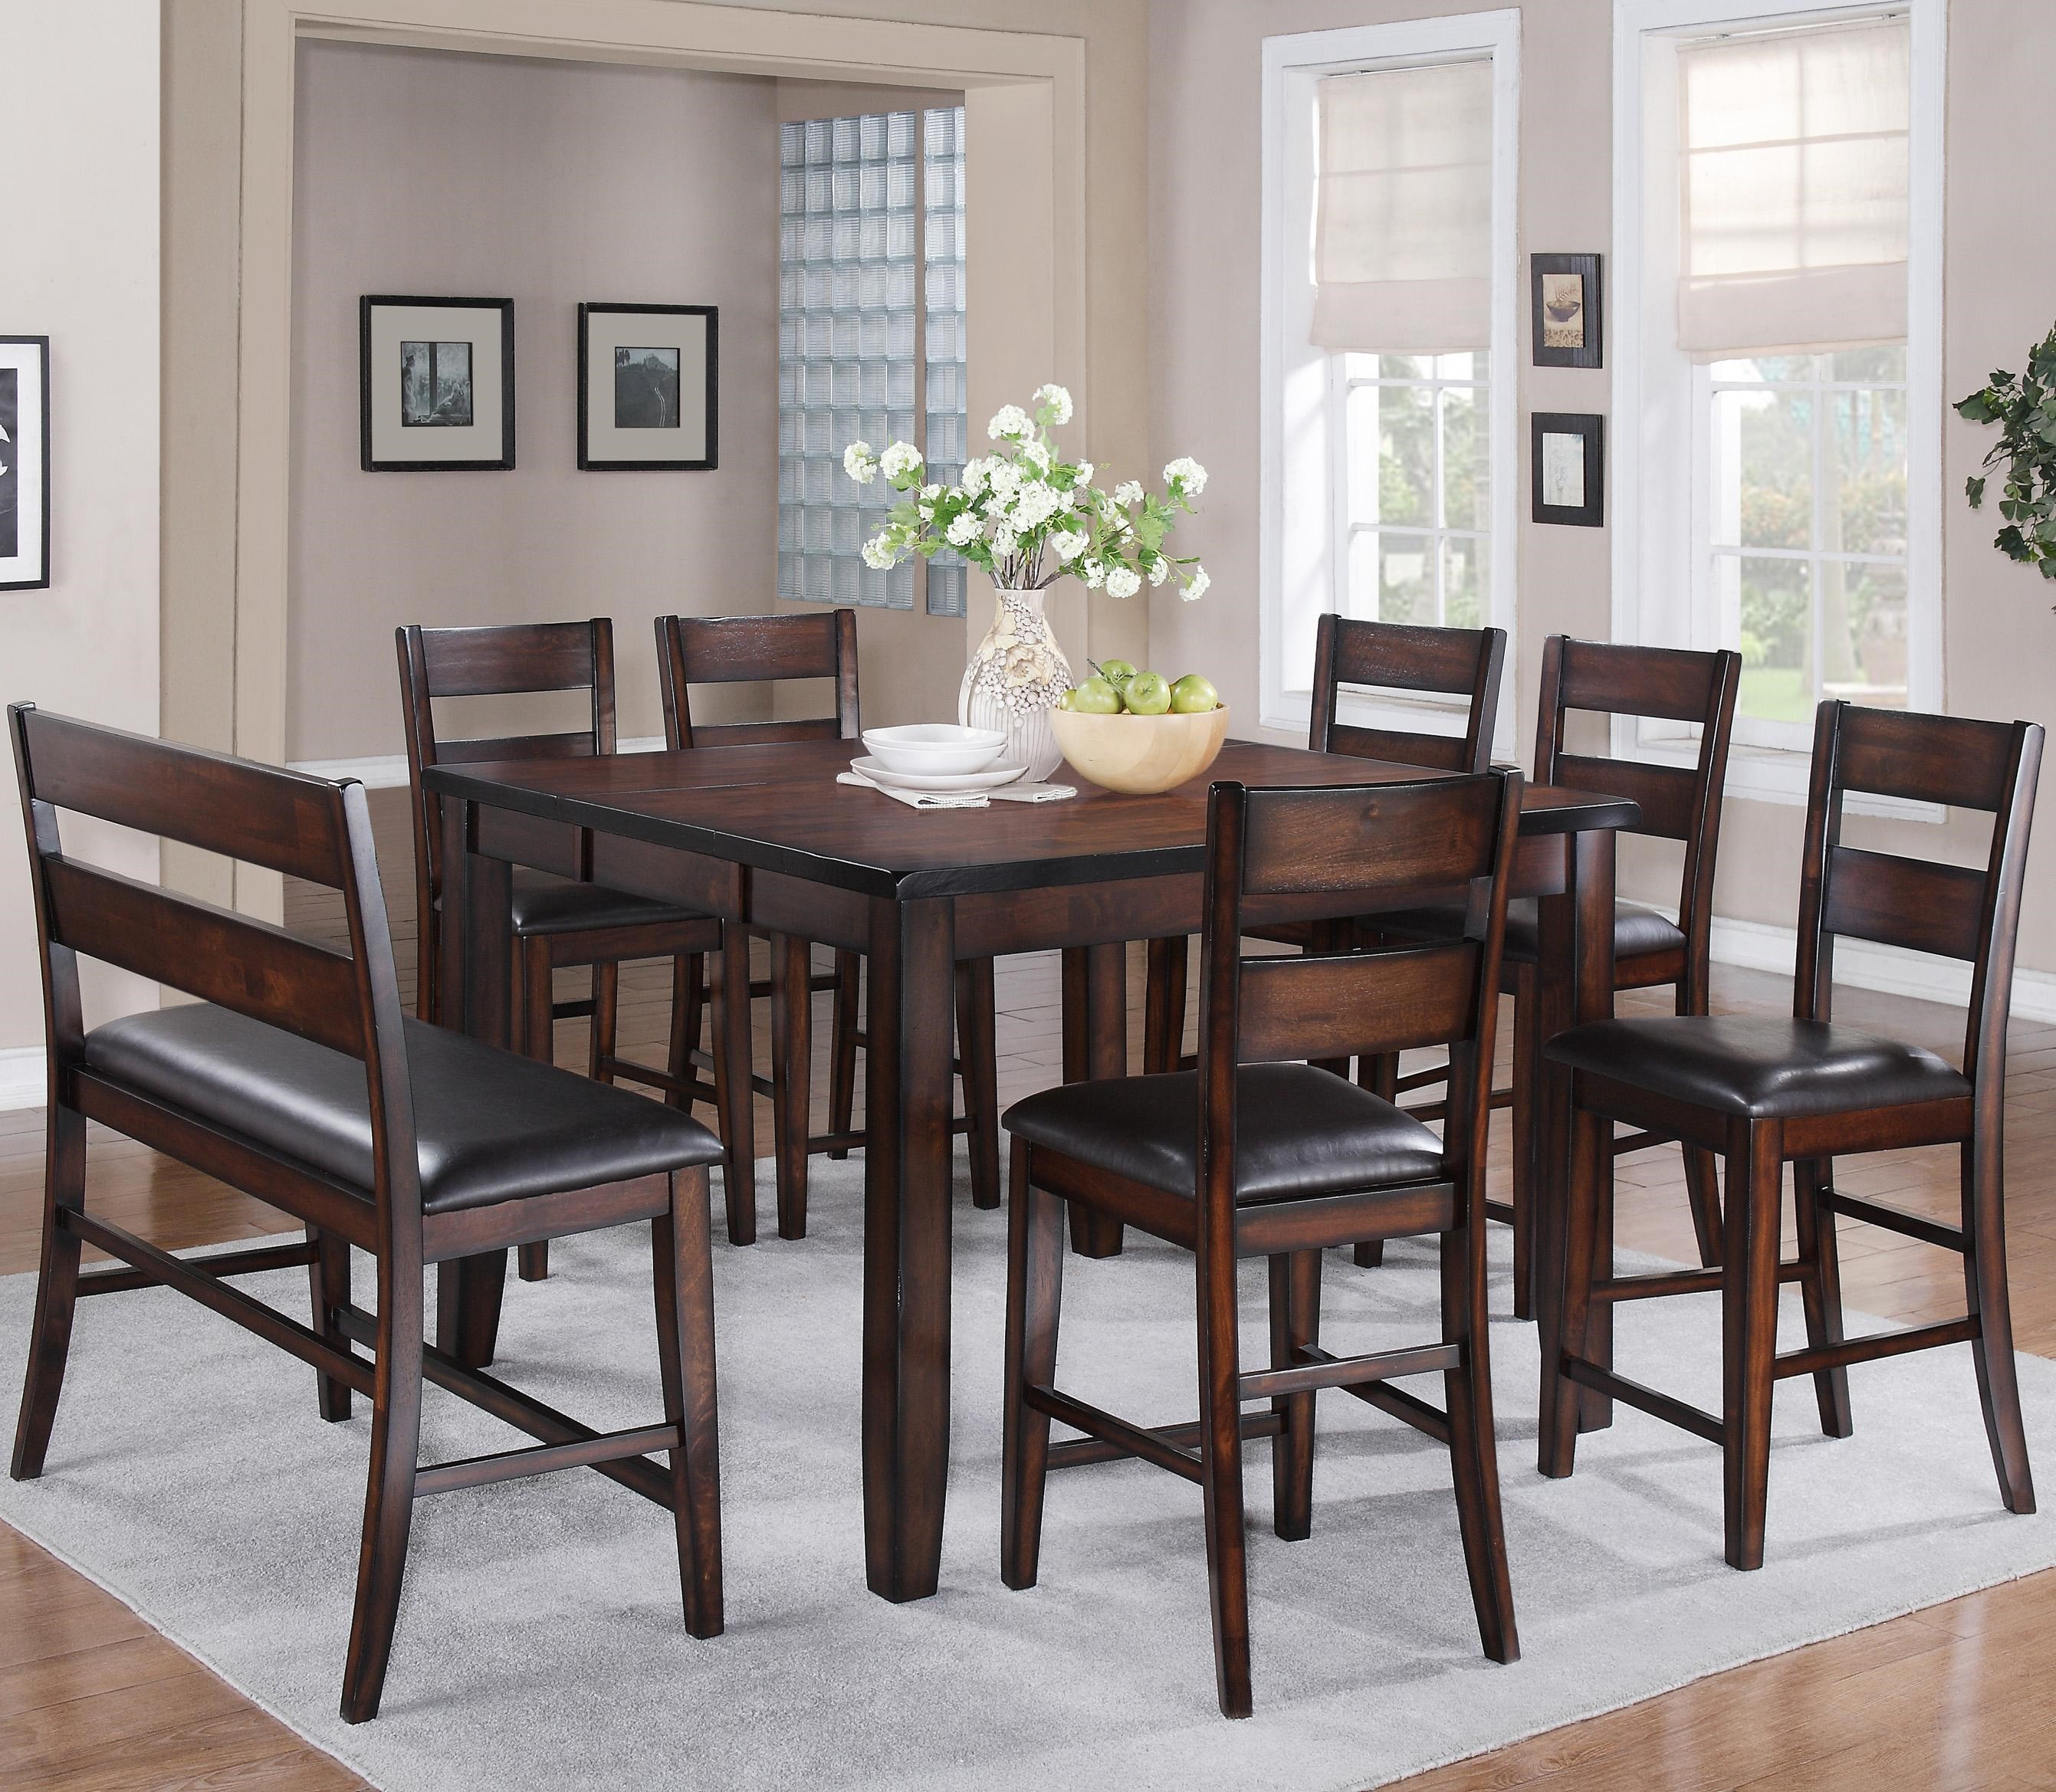 Crown Mark Maldives 8 Piece Counter Height Dining Set With Bench Royal Furniture Table Chair Set With Bench